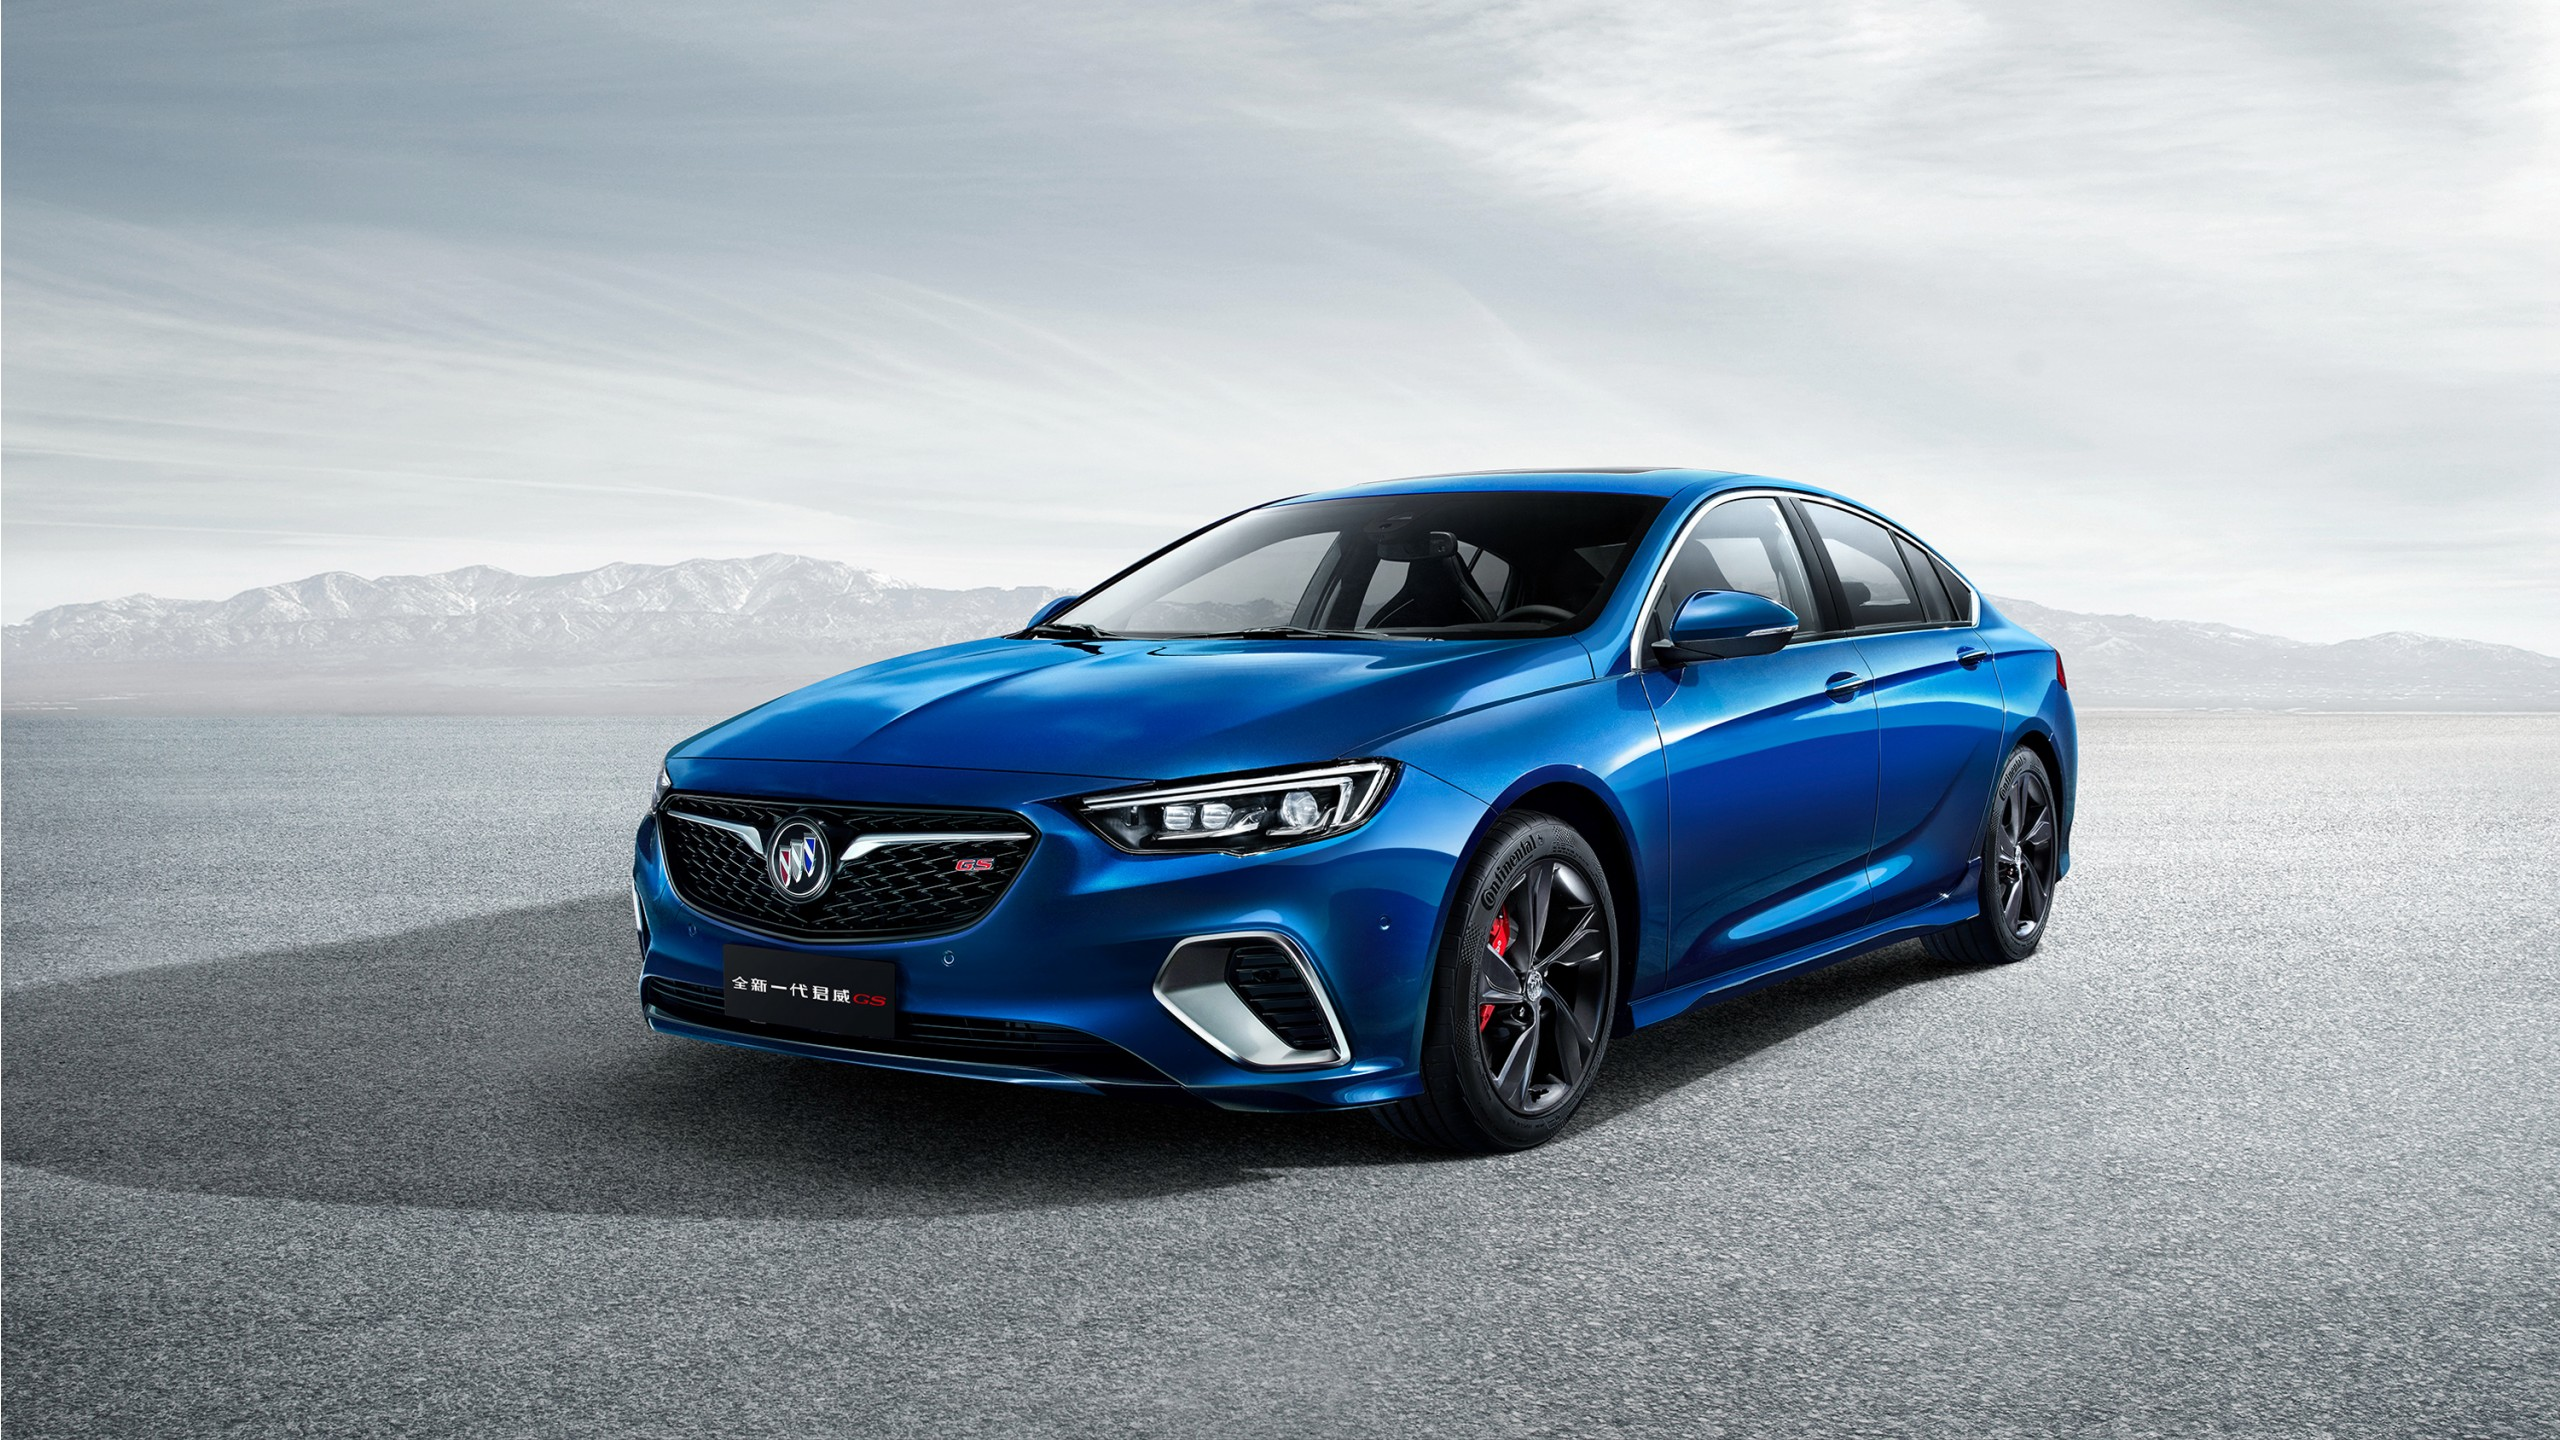 Cars Wallpapers: 2018 Buick Regal GS Wallpaper